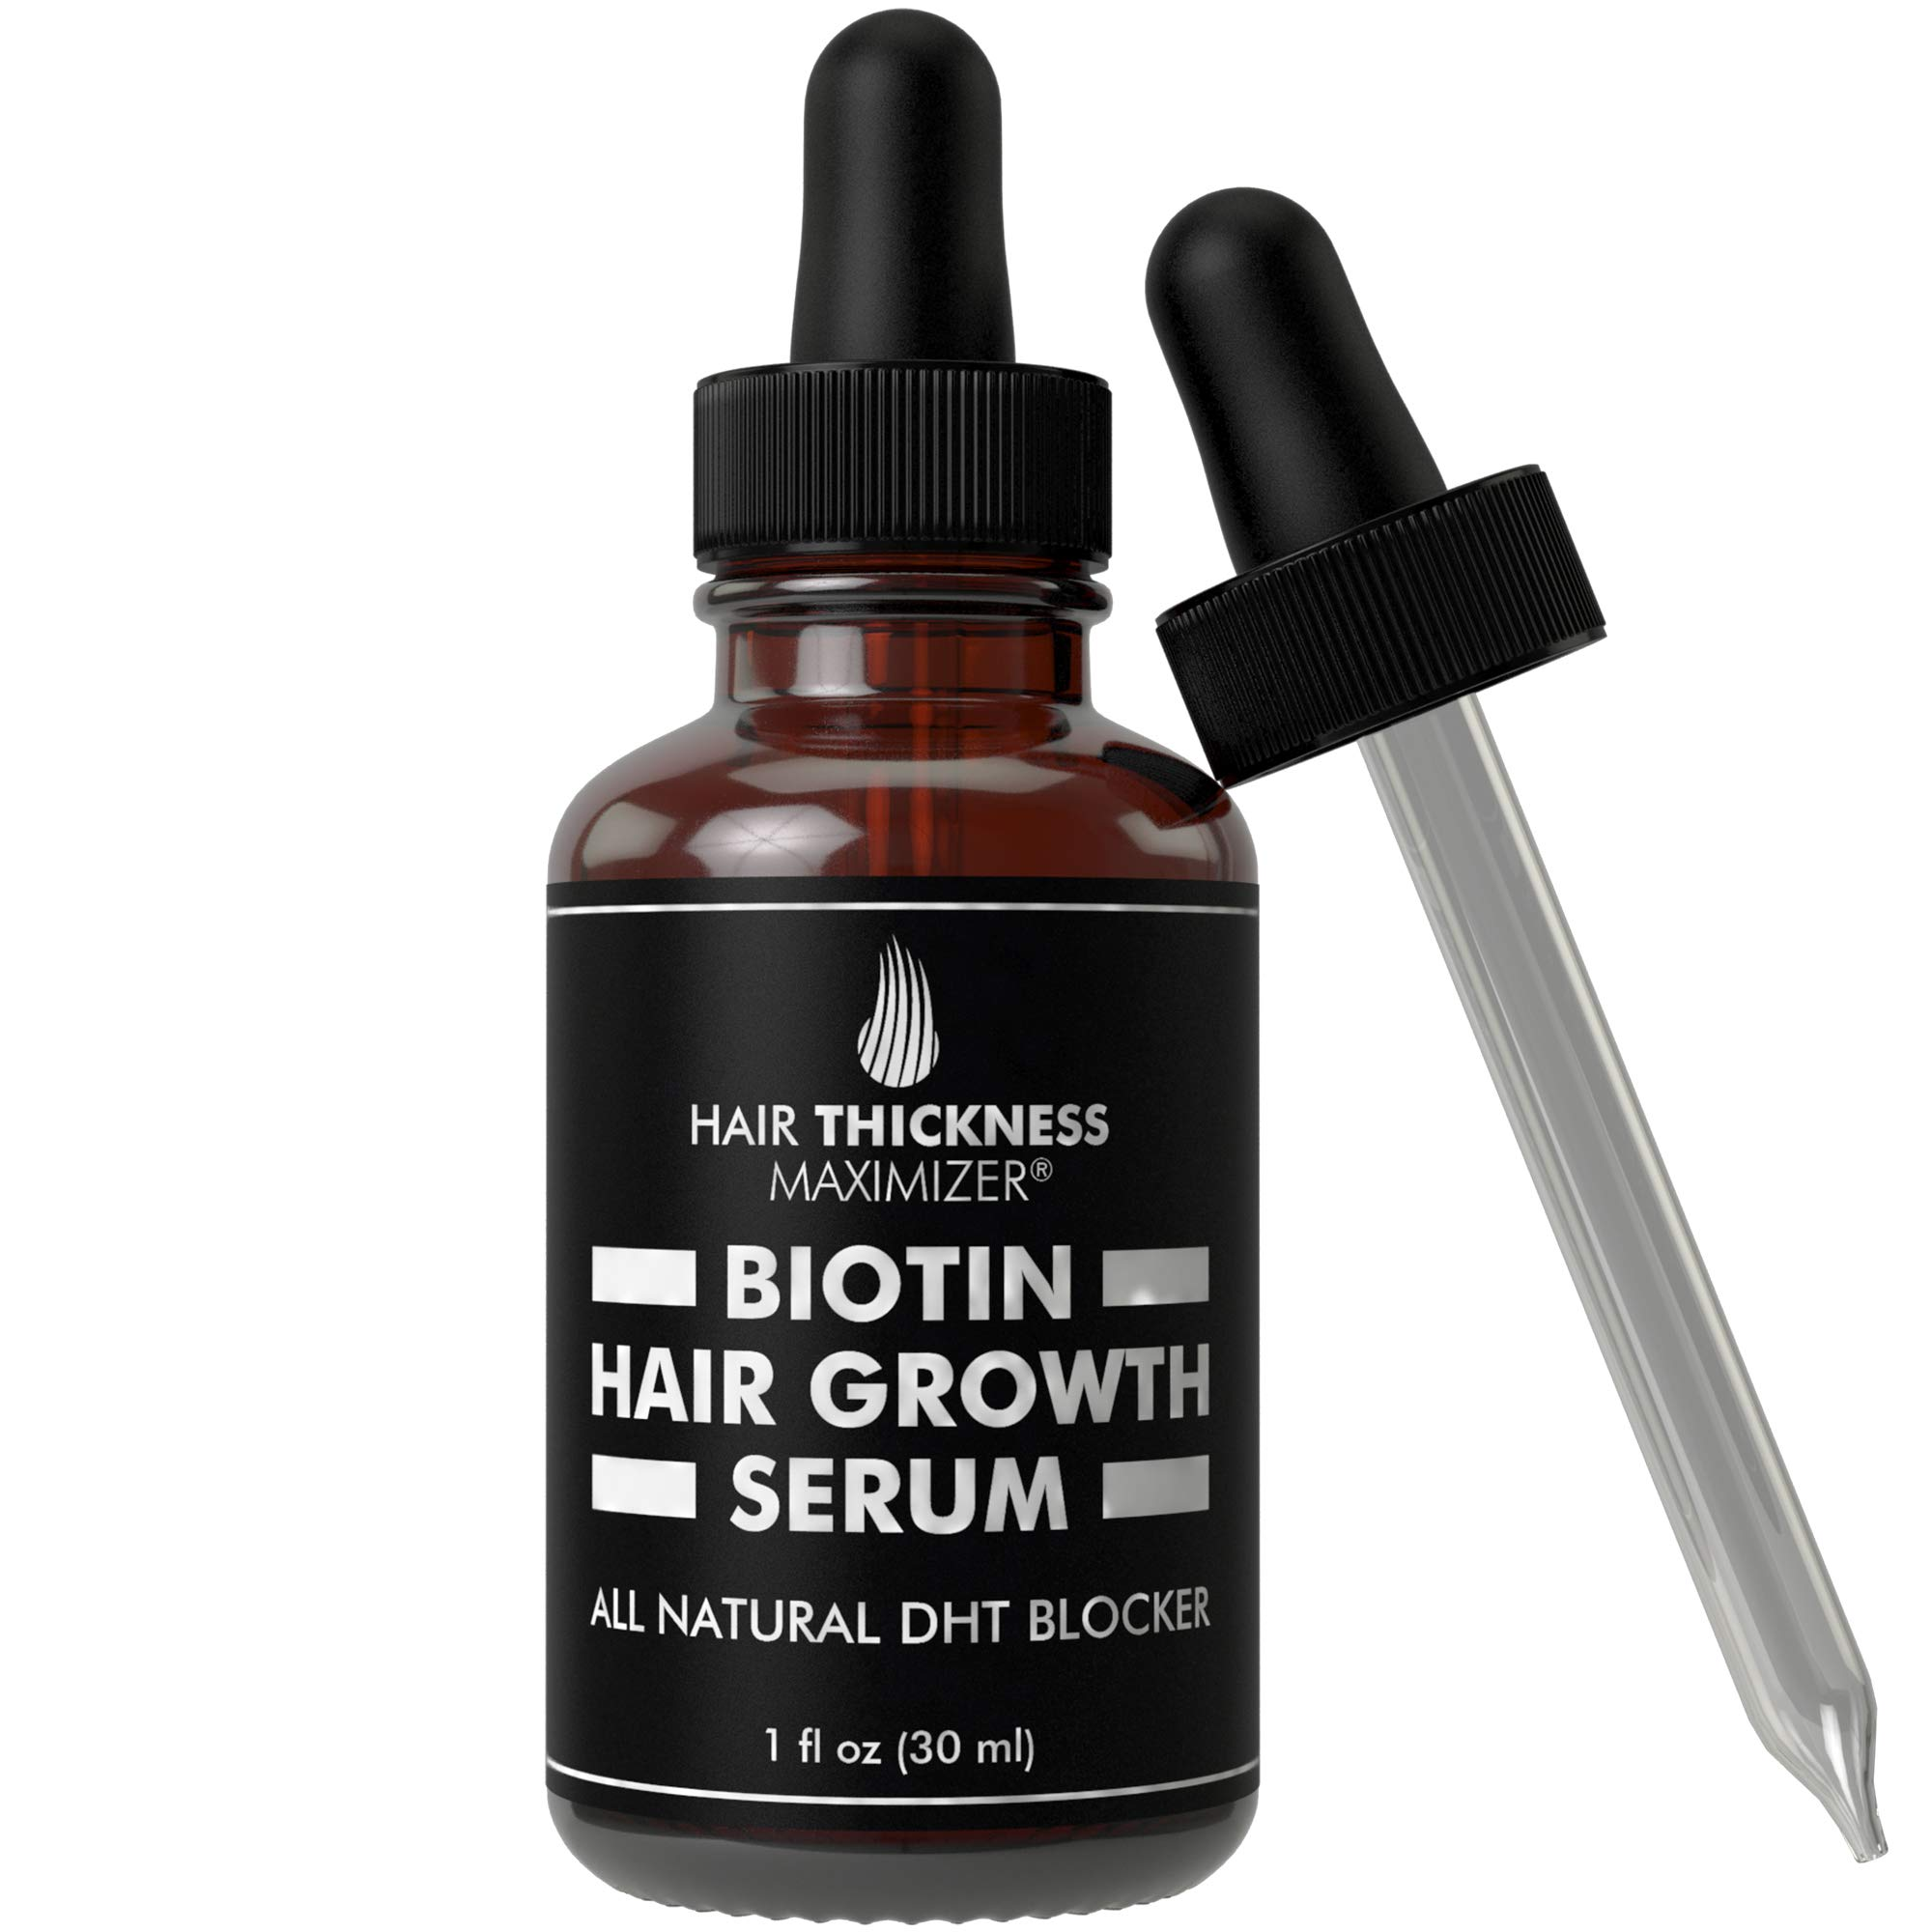 Hair Growth Serum with Biotin Oil by Hair Thickness Maximizer. For Hair Loss, Damaged, Dry, Frizzy Hair. Natural Thickening and Smoothing of Hair and Nourishing of Scalp for Women and Men (1oz) by Hair Thickness Maximizer